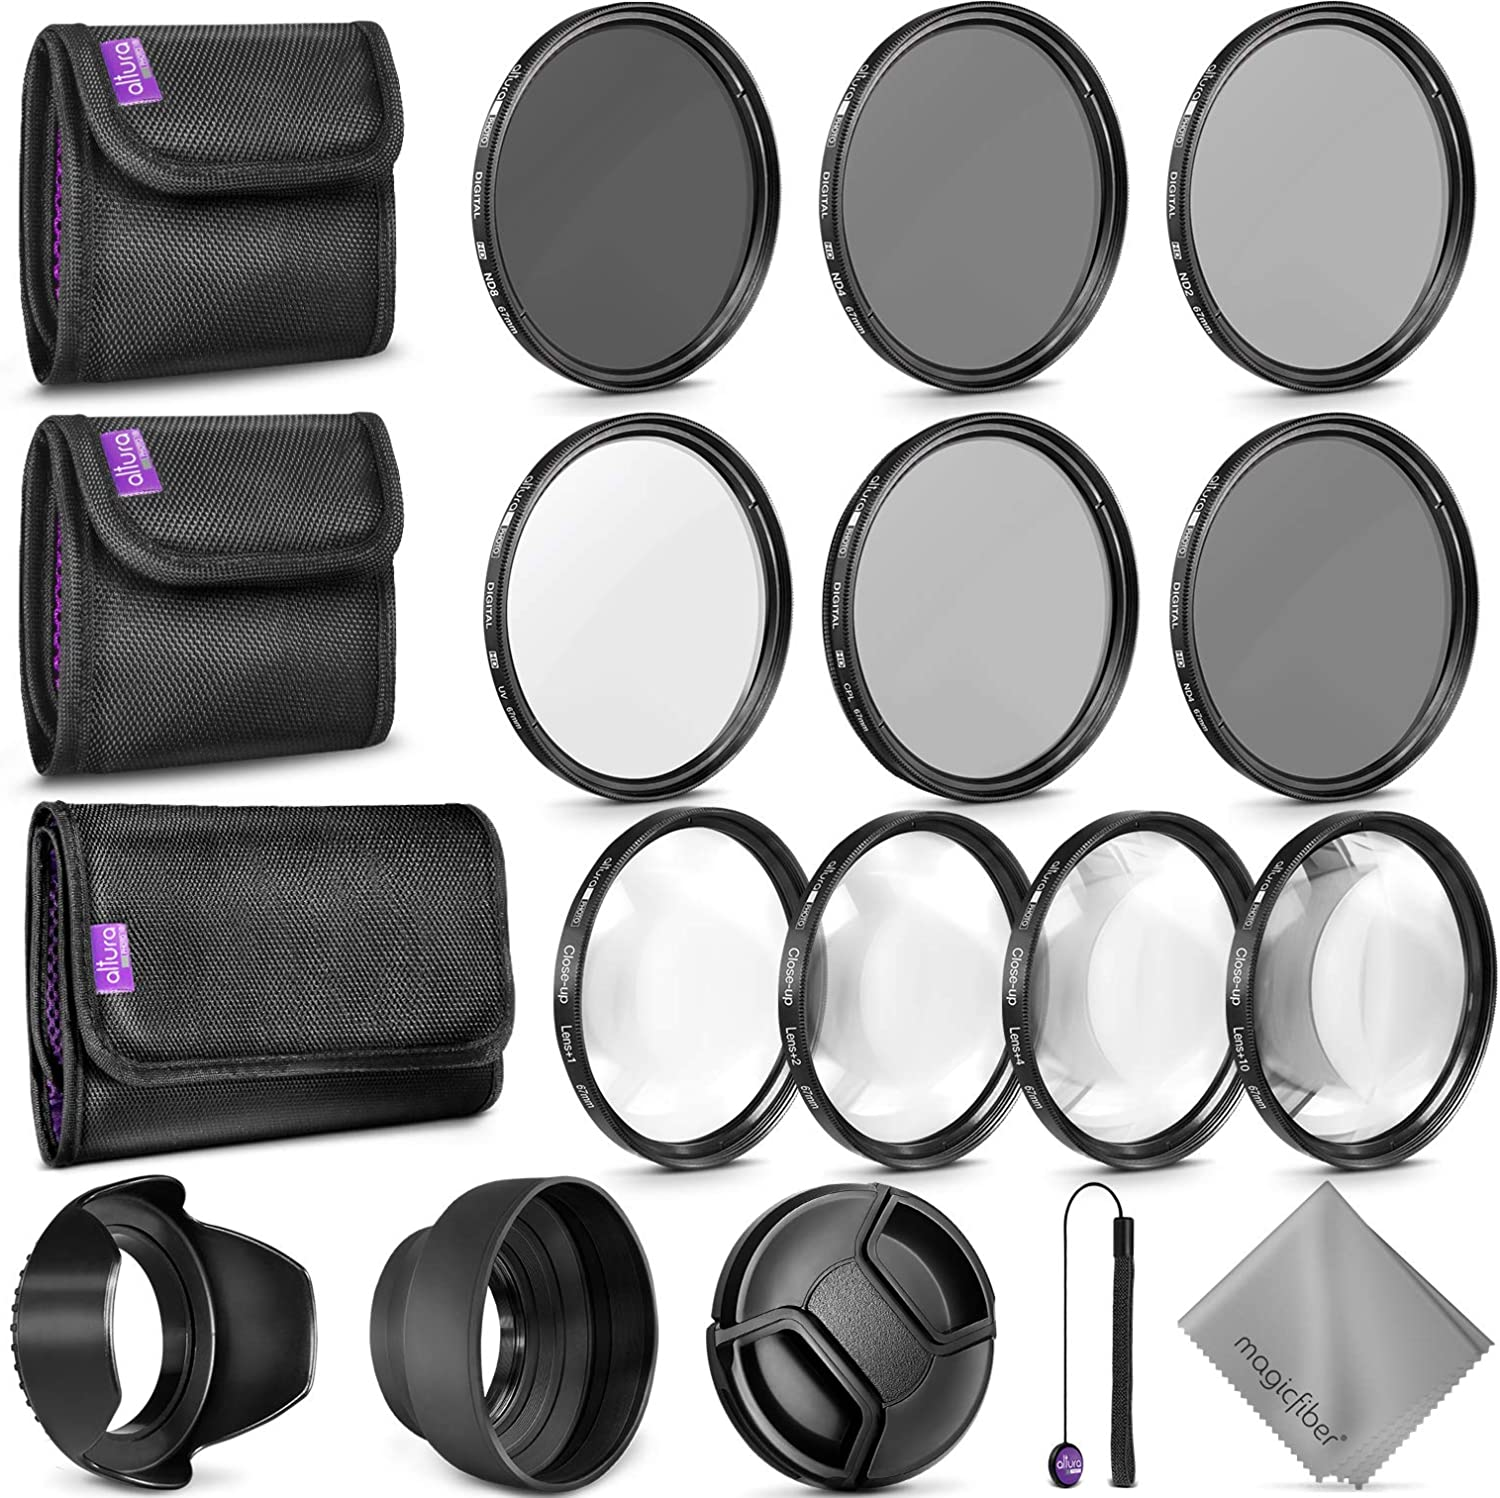 67MM Complete Lens Filter Accessory Kit for Camera Lenses: Includes Altura Photo UV CPL ND4 Filter Kit, Macro Close Up Kit and Neutral Density Filter Set